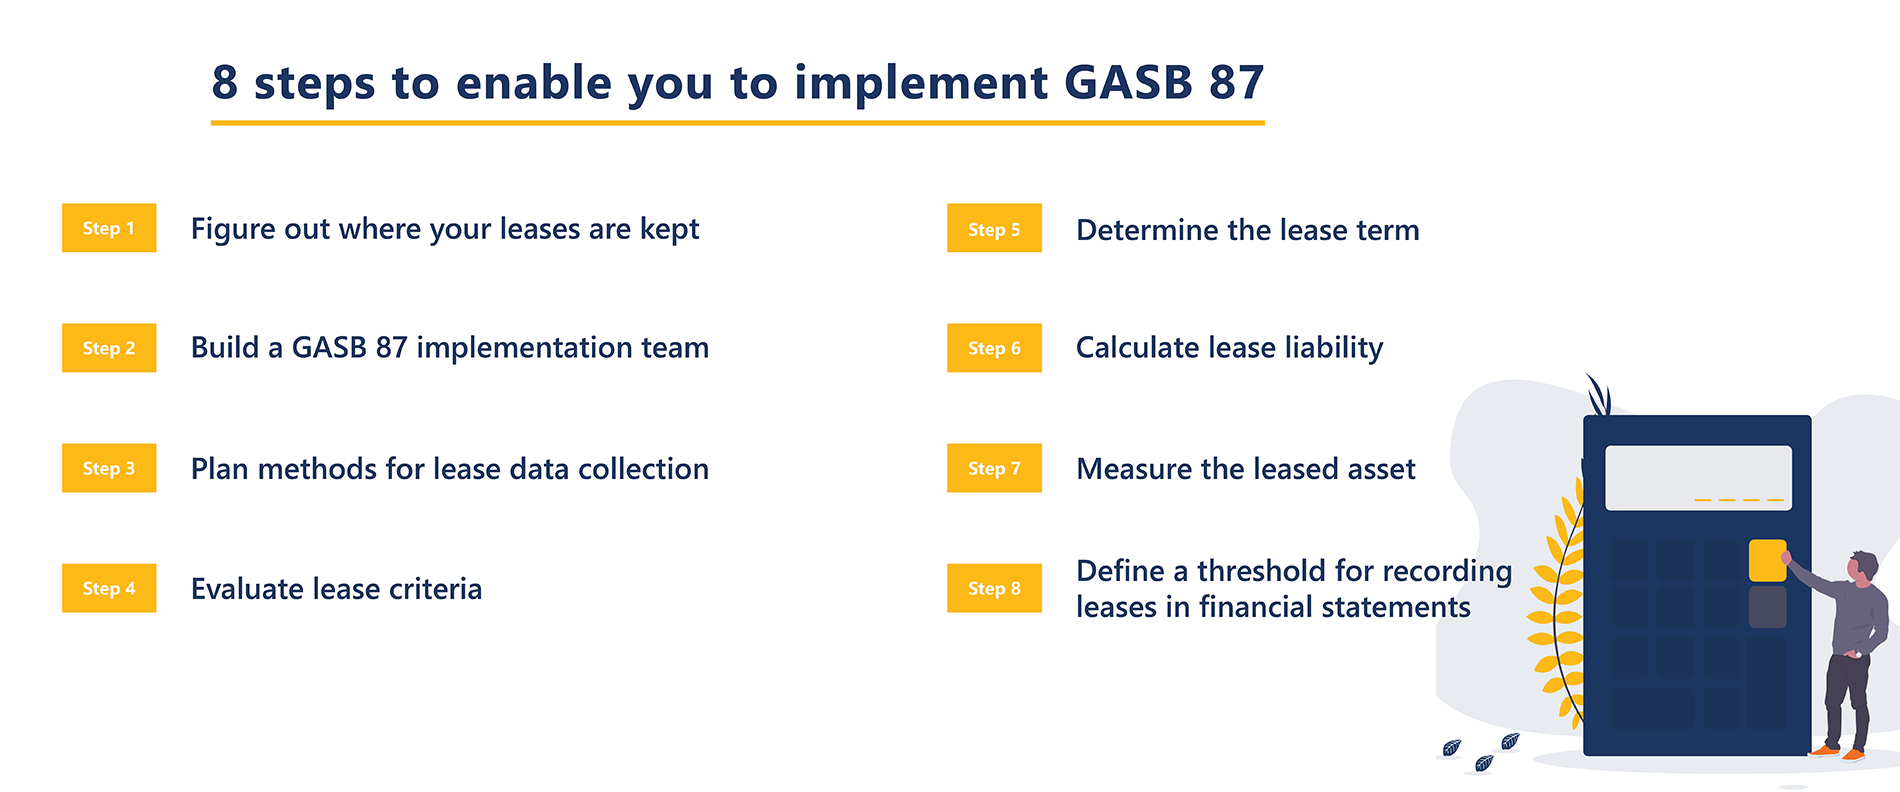 8 steps to enable you to implement GASB 87